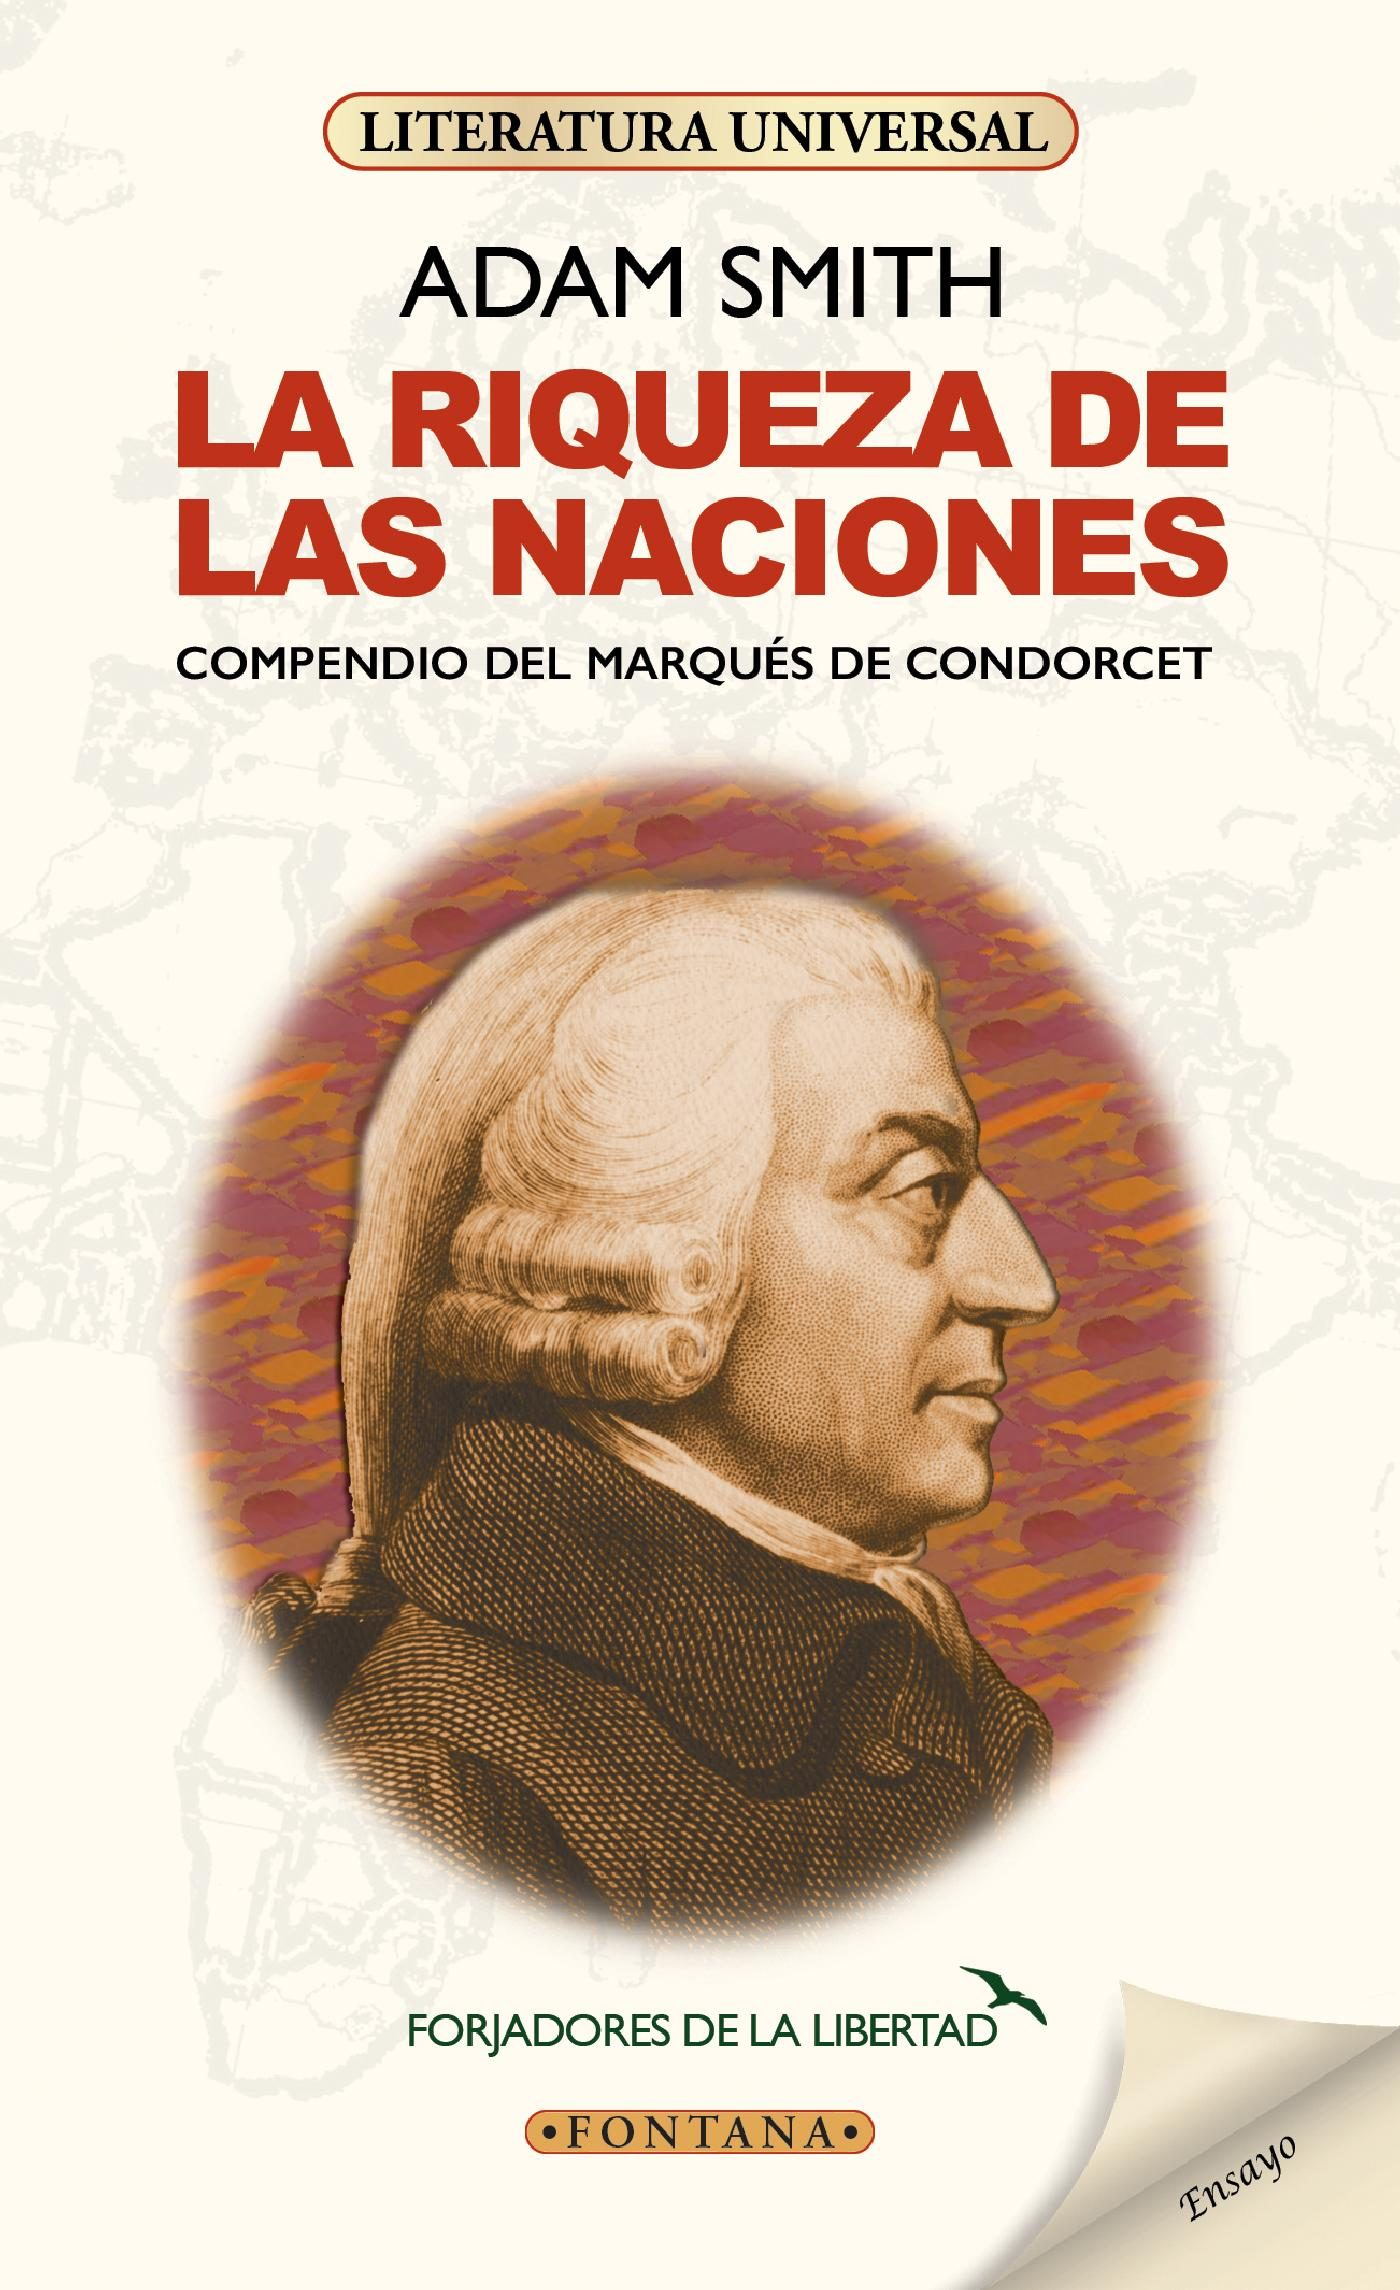 Adam Smith Libros 10 Libros Que Cambiaron El Mundo Ebooks Y Tutoriales En